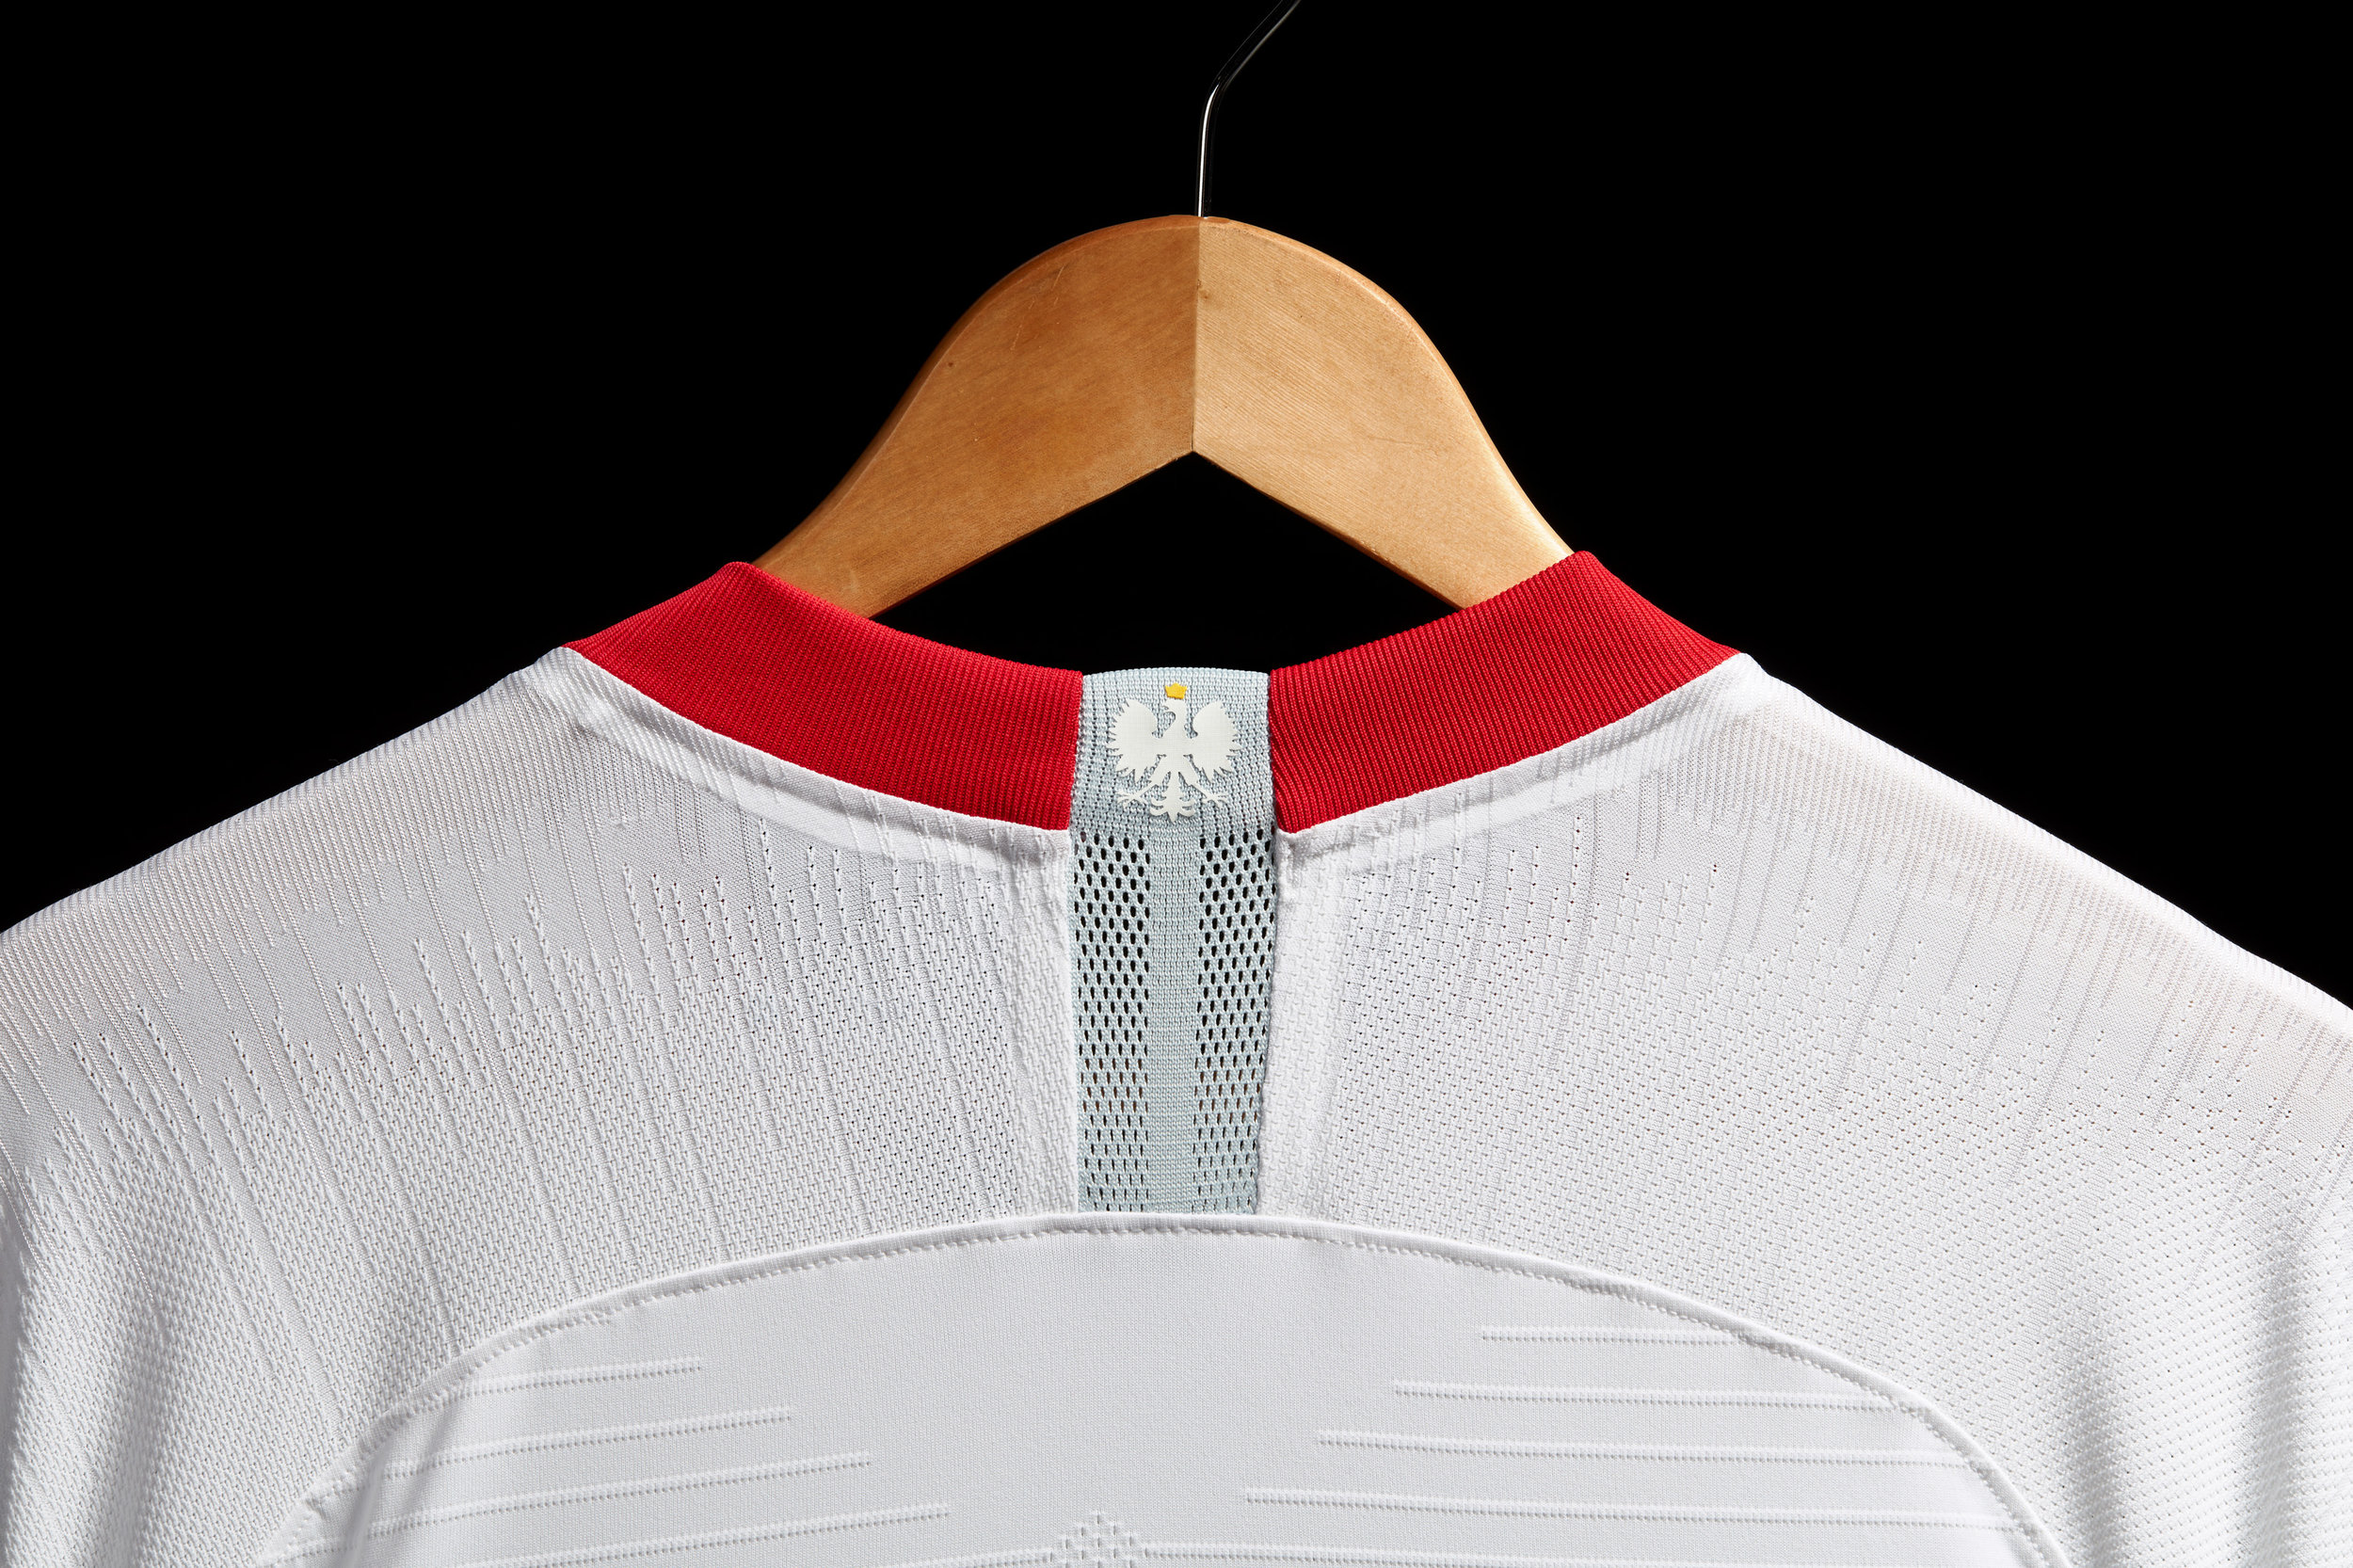 su18_fb_ntc_poland_home_vaporknit_match_collar_78057.jpg